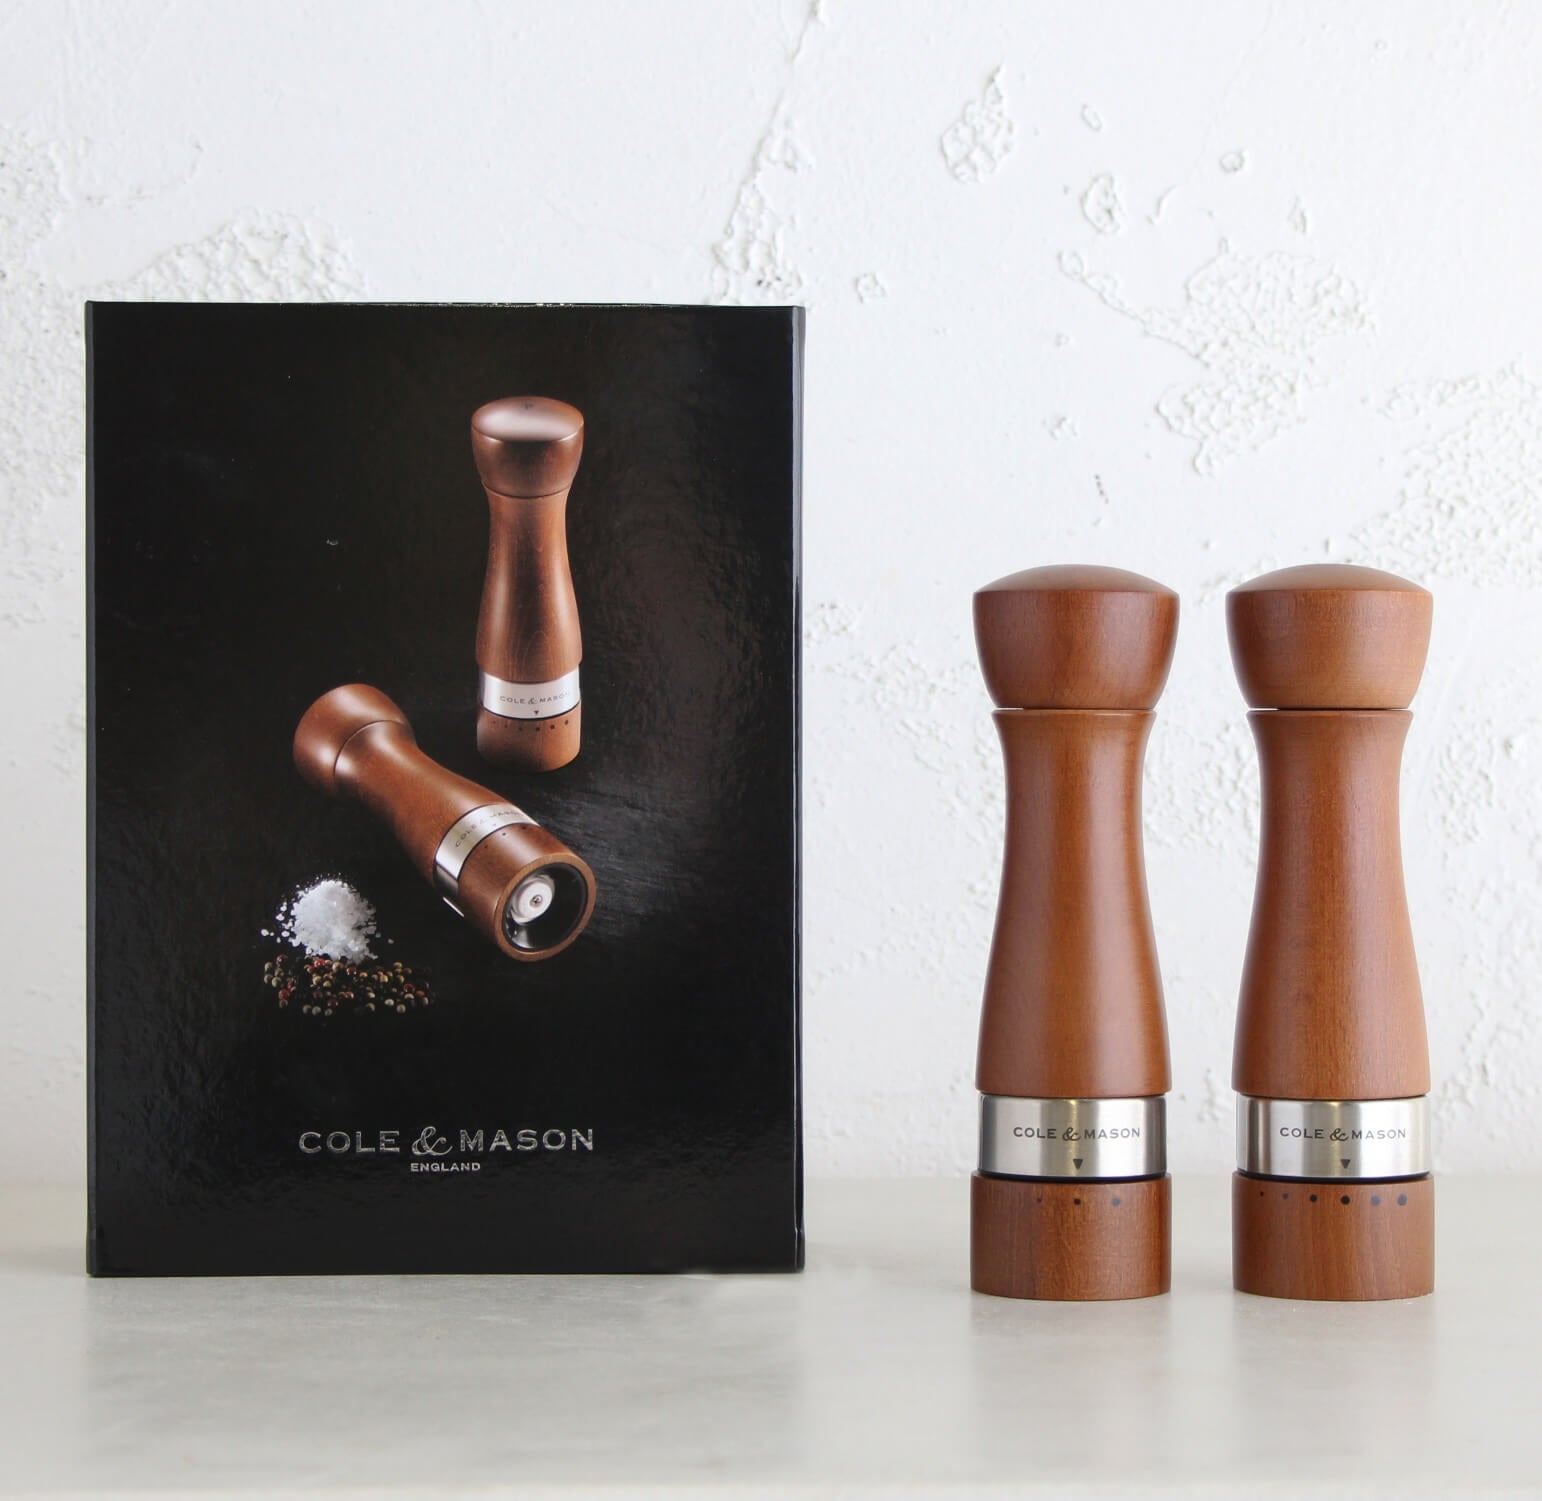 COLE & MASON  |  MELBURY SALT + PEPPER GRINDER GIFT SET  |  WALNUT